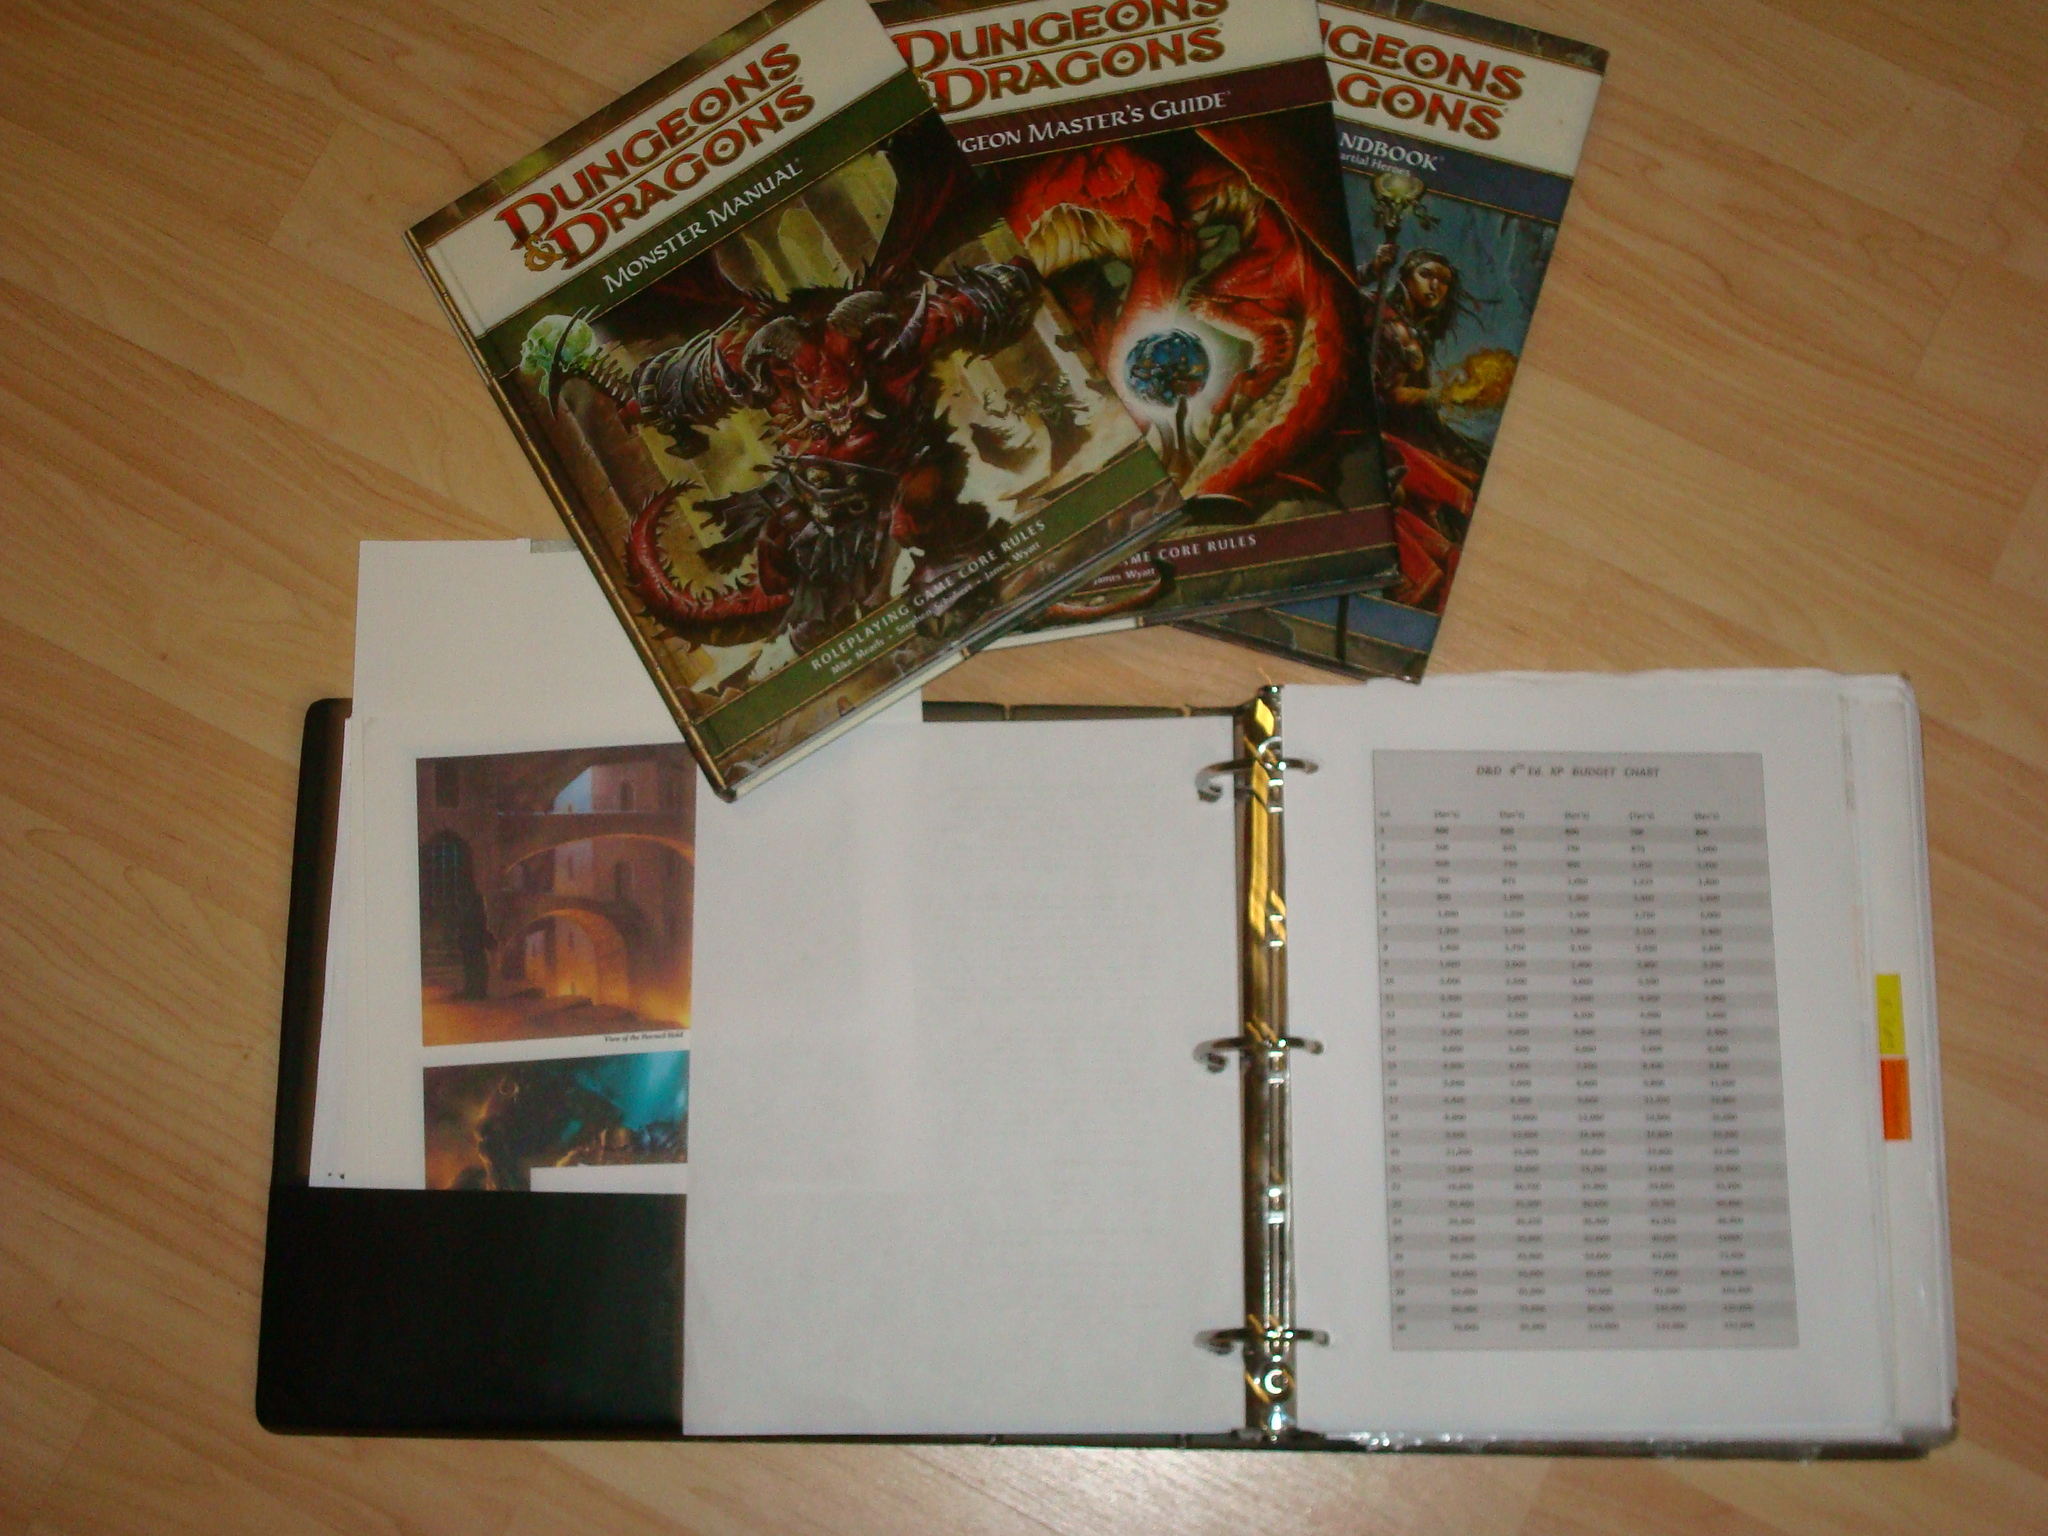 Your DM'ing binder should be part of your core rulebooks.